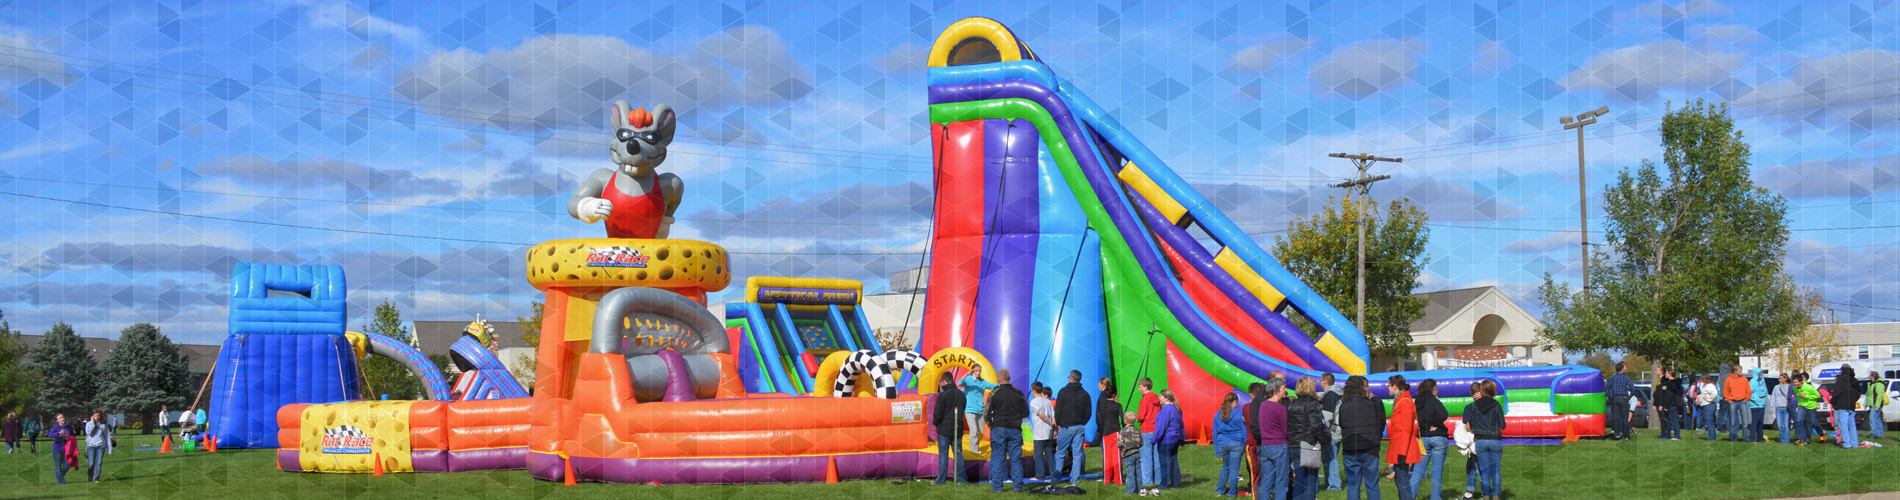 Midwest Inflatables Ames, Iowa Event Photo